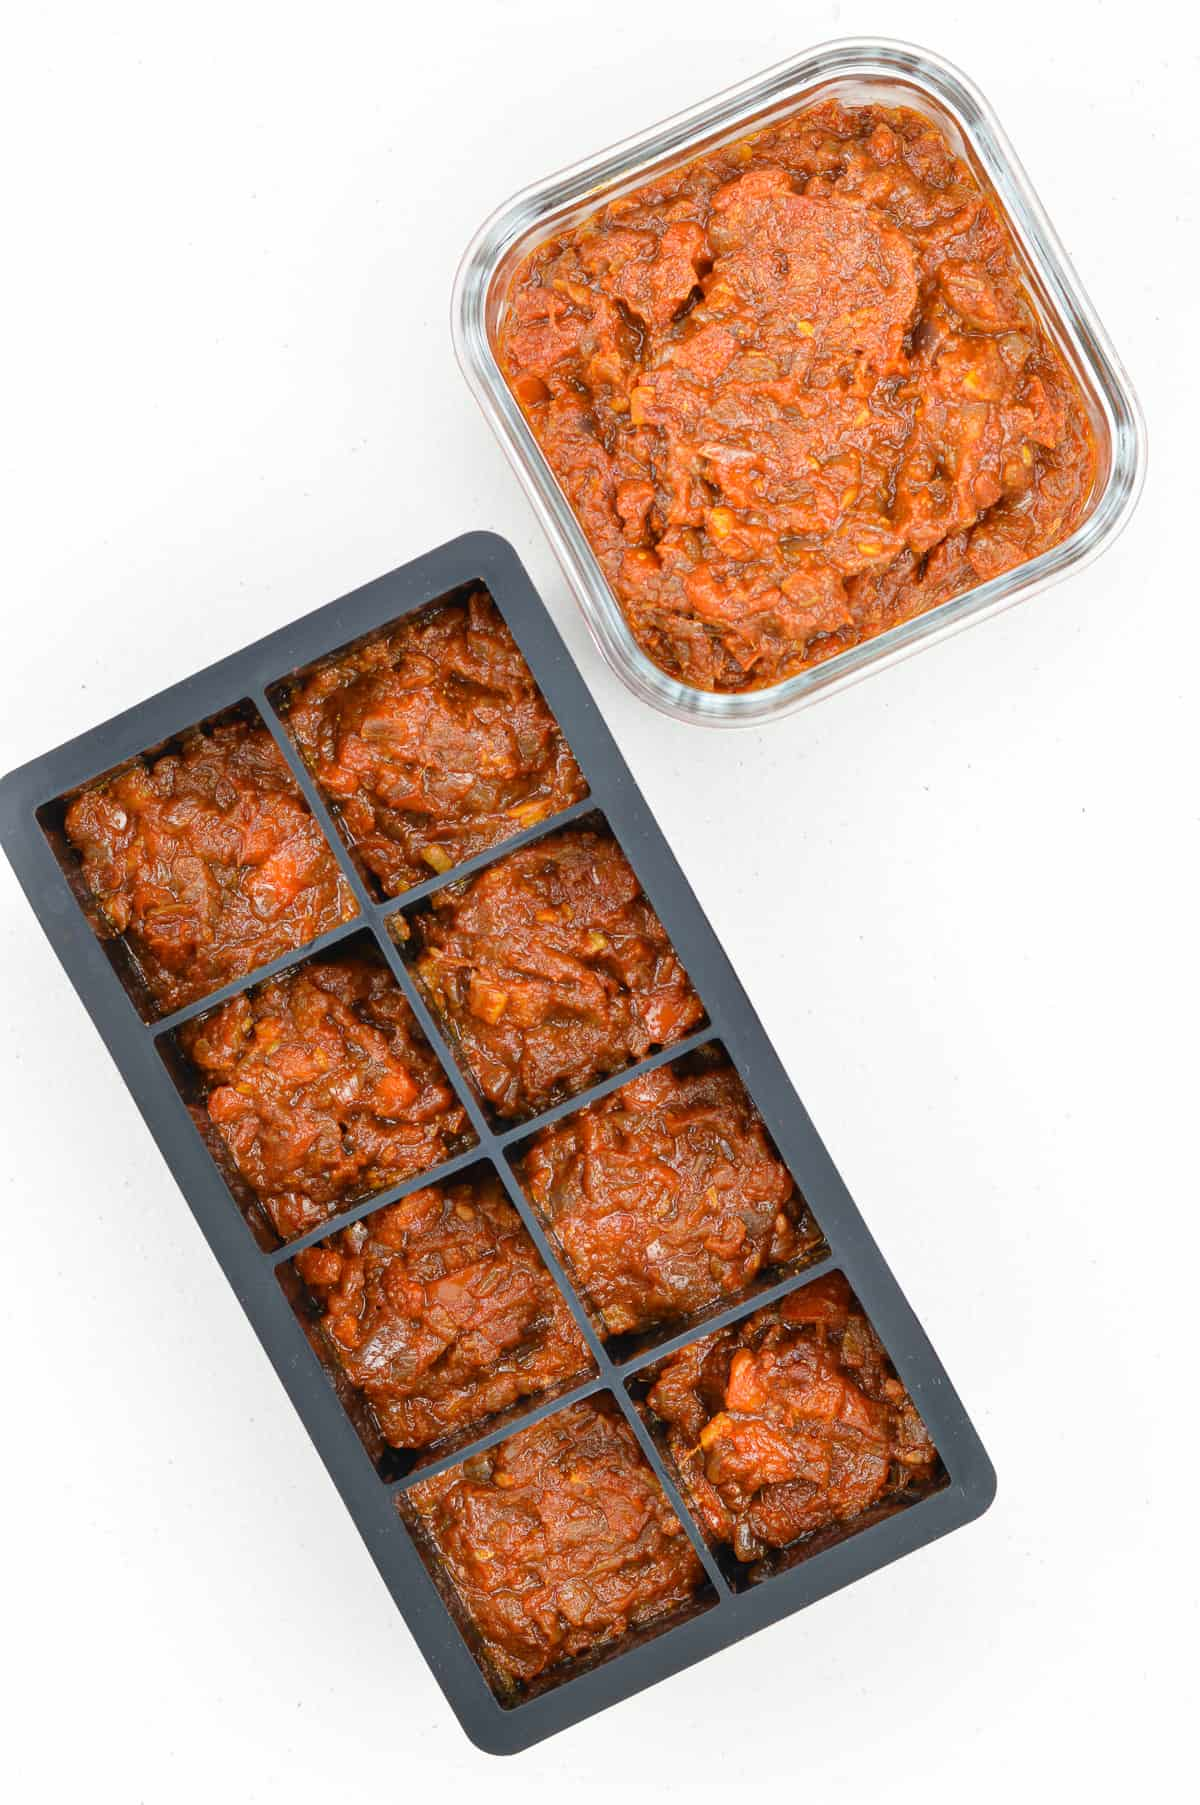 bhuna masala curry sauce base portioned out in a black ice cube tray and also in a glass storage container